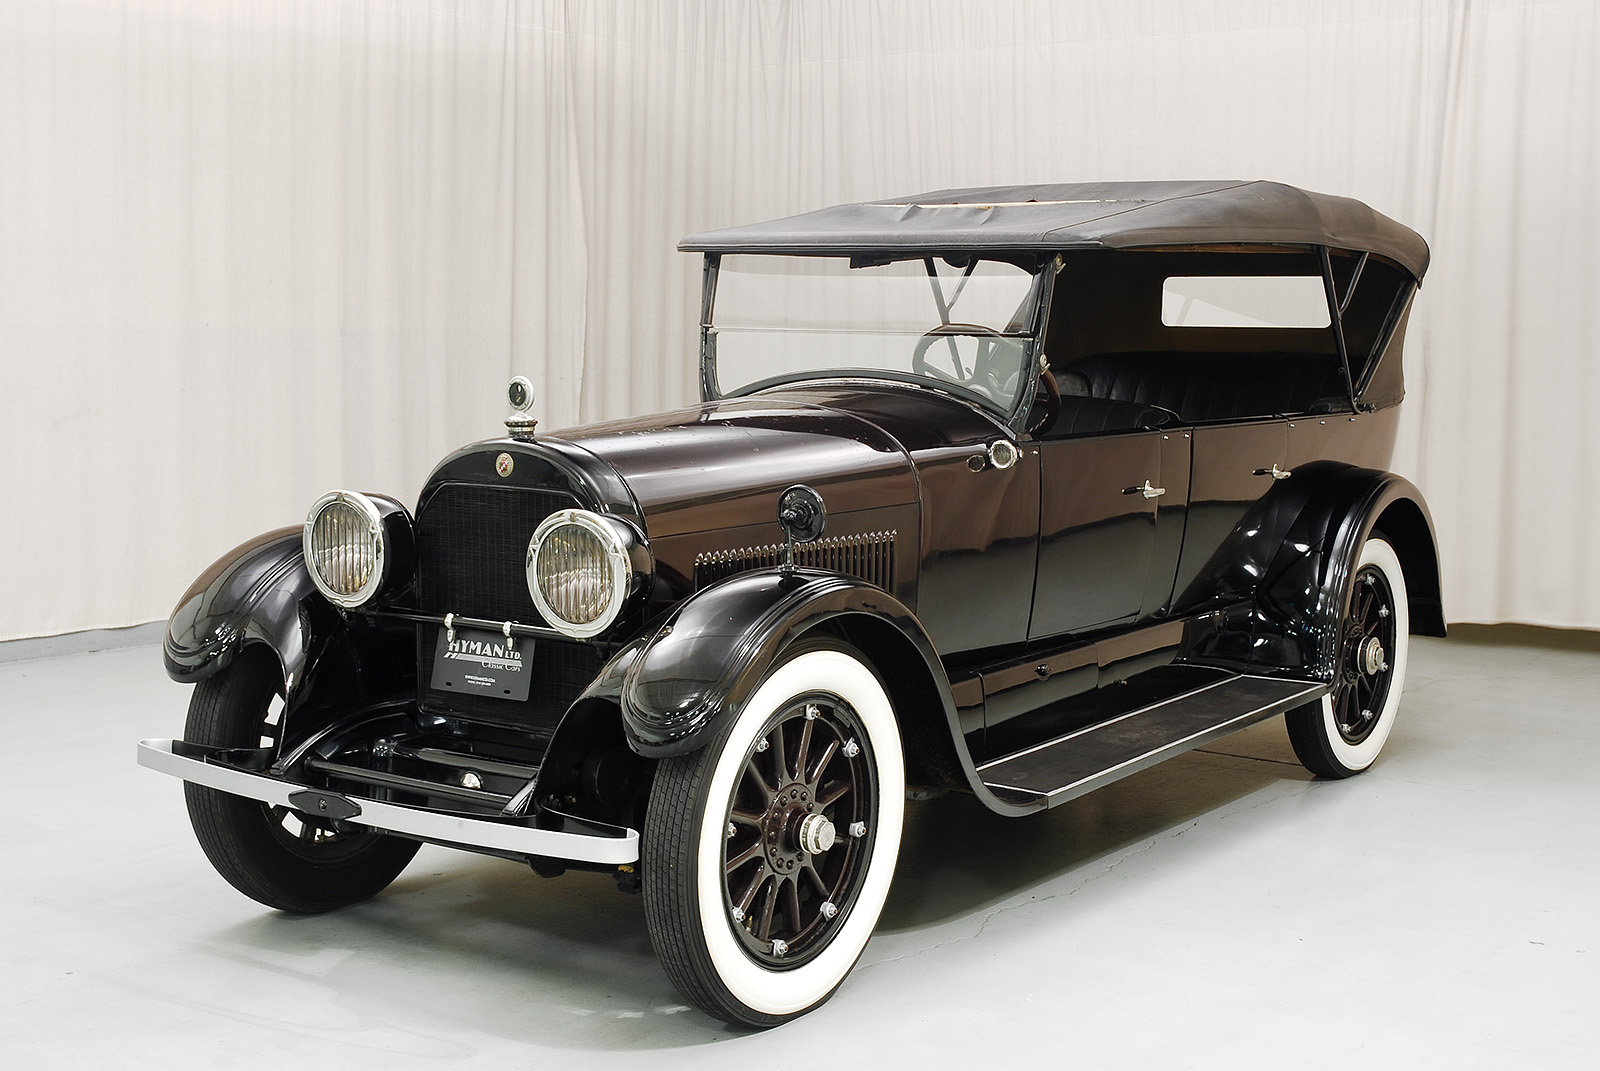 The 1924 Cadillac Type V-63 Touring is a great Cadillac convertible.